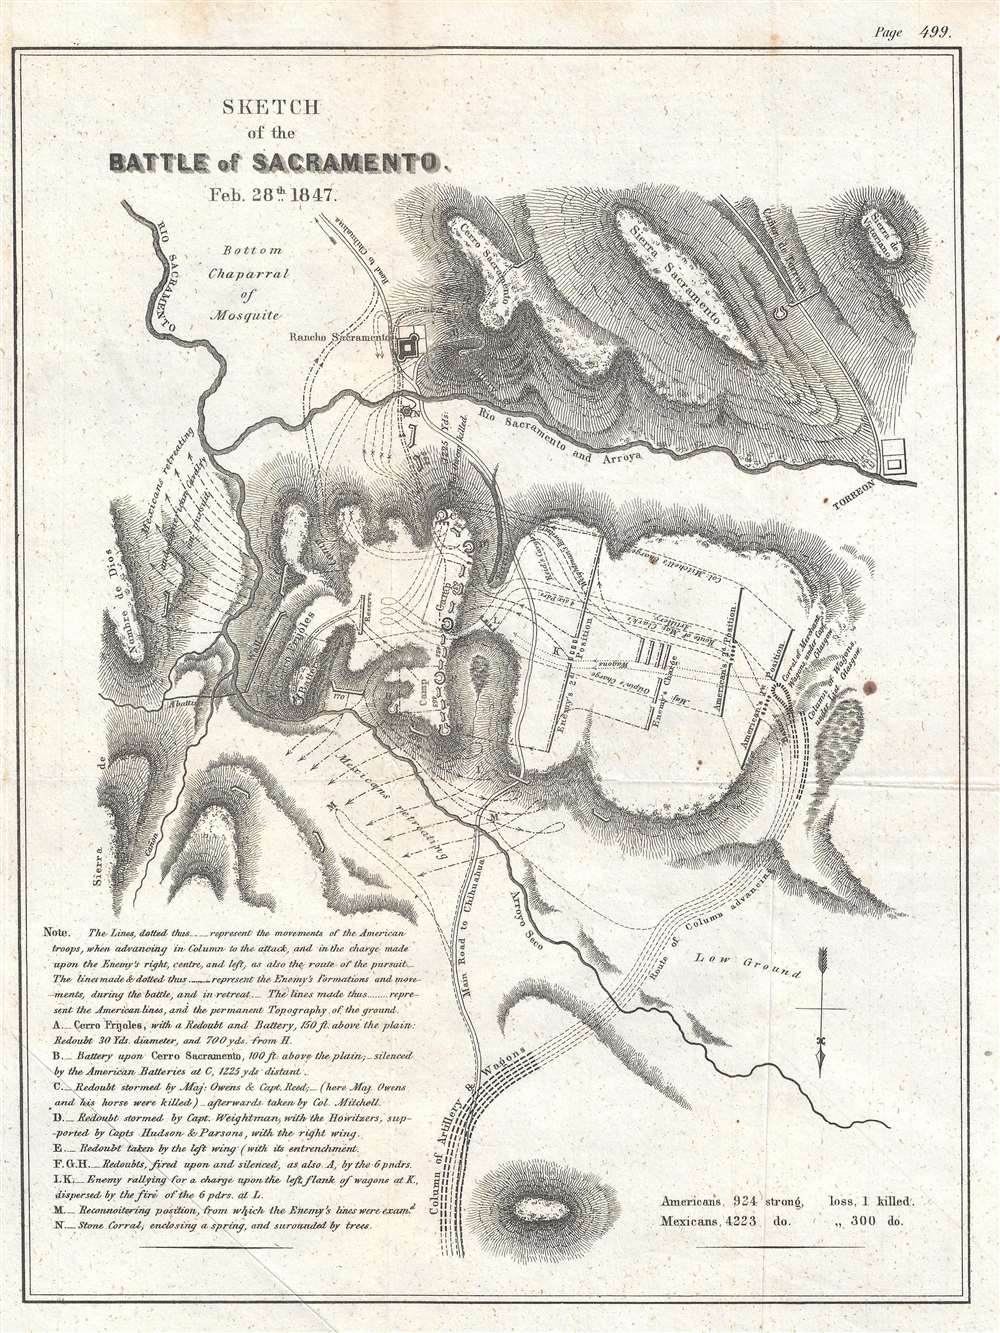 Sketch of the Battle of Sacramento Feb. 28th, 1847. - Main View